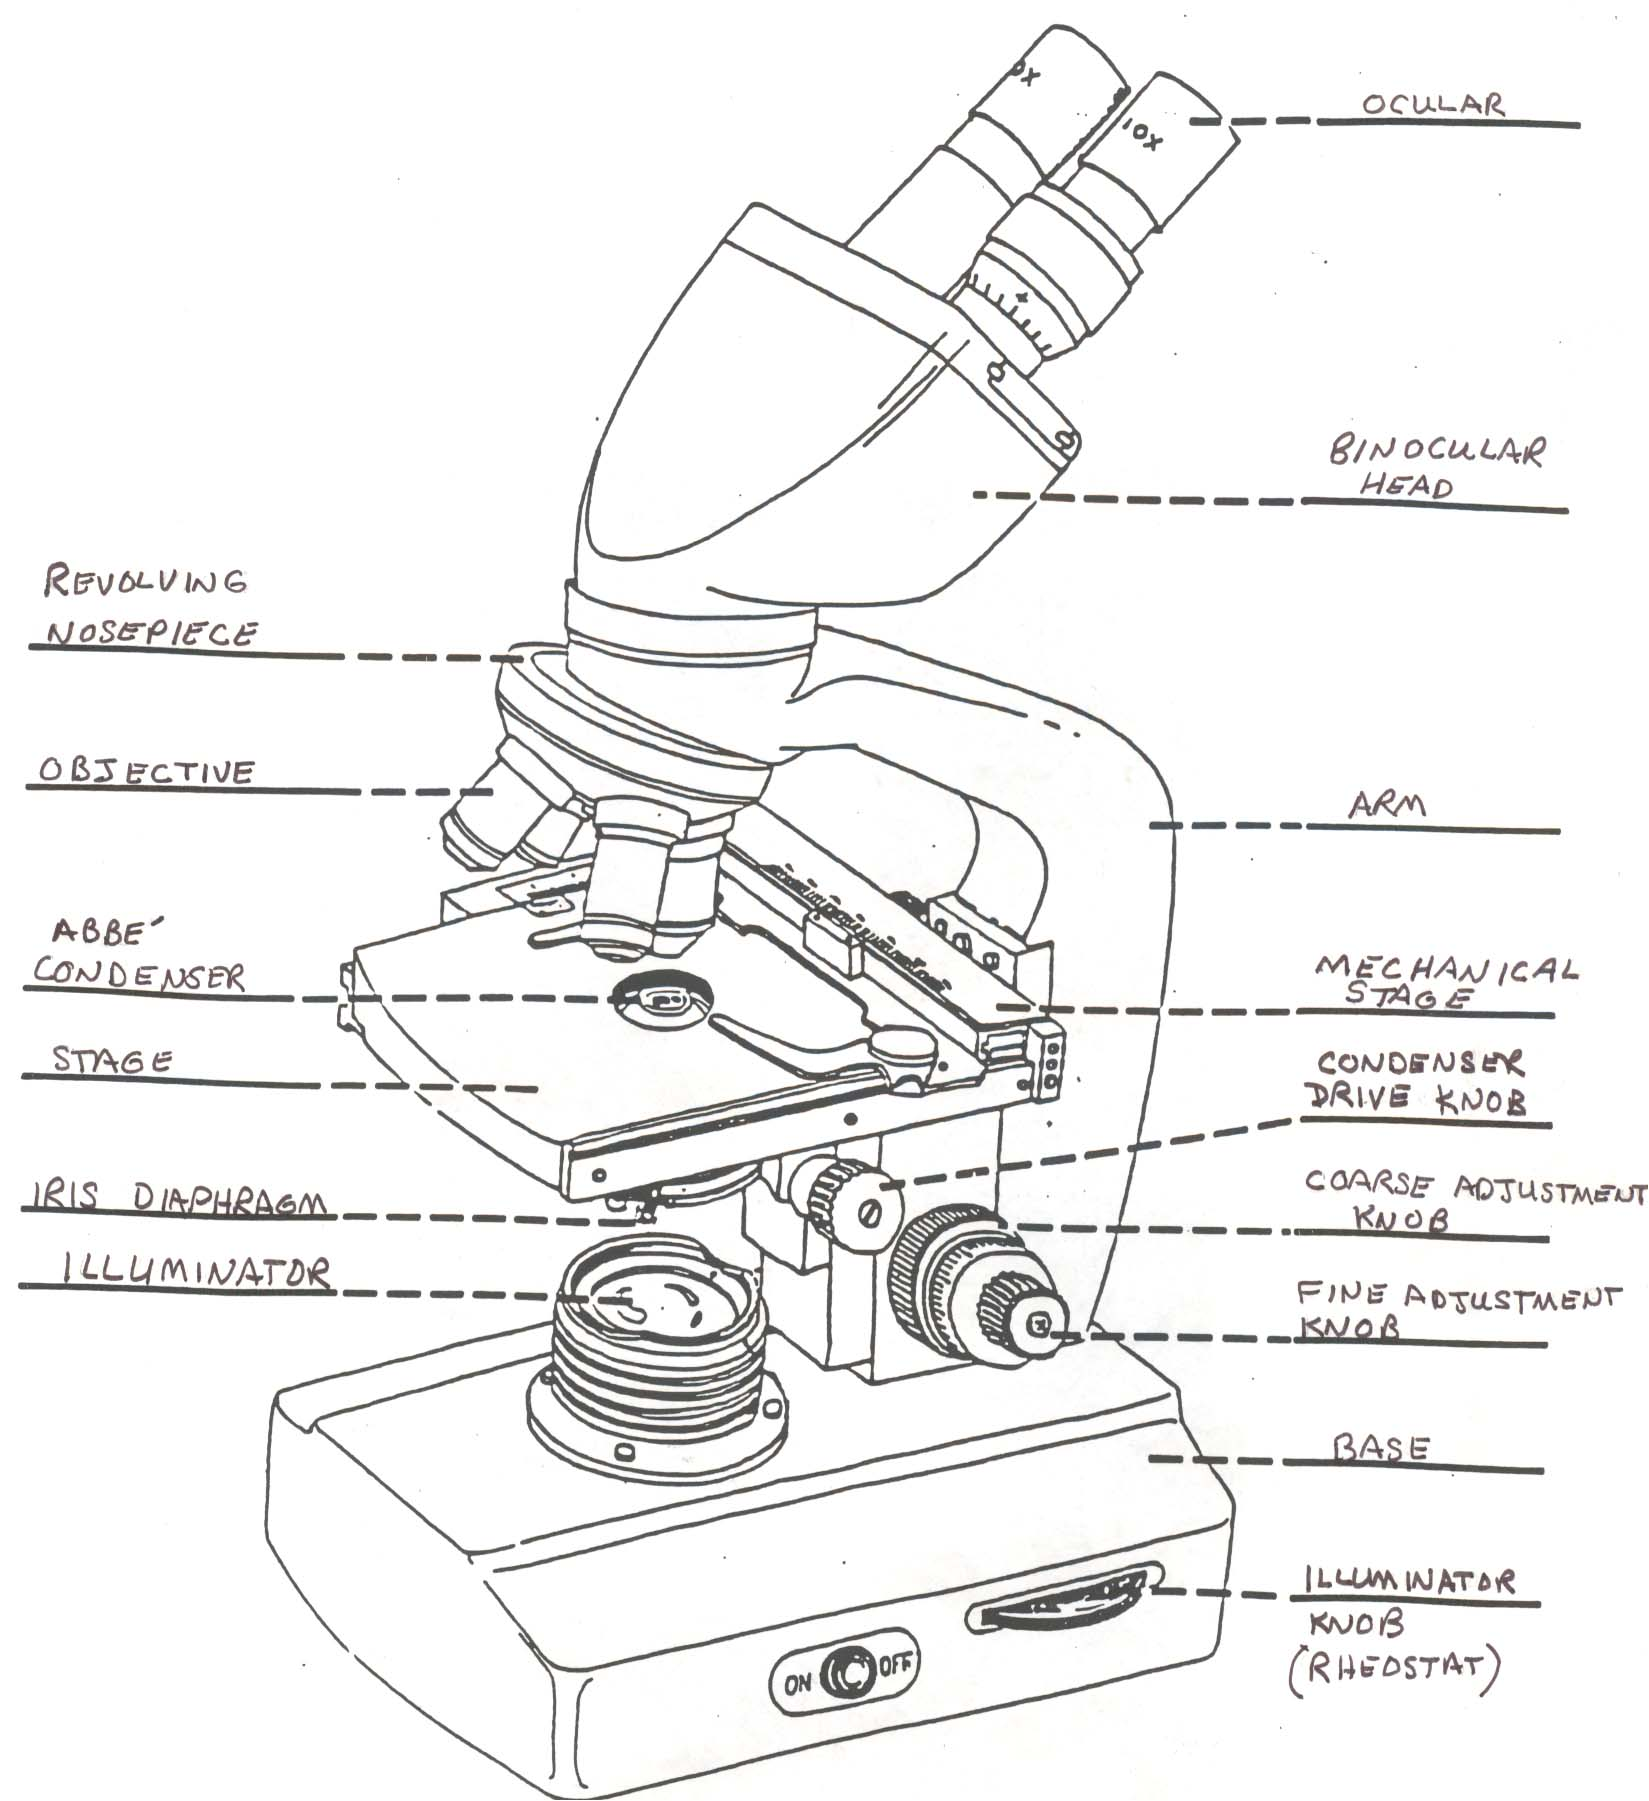 Worksheets Microscope Lab Worksheet sfcc biology 160 documents microscope drawing labeled